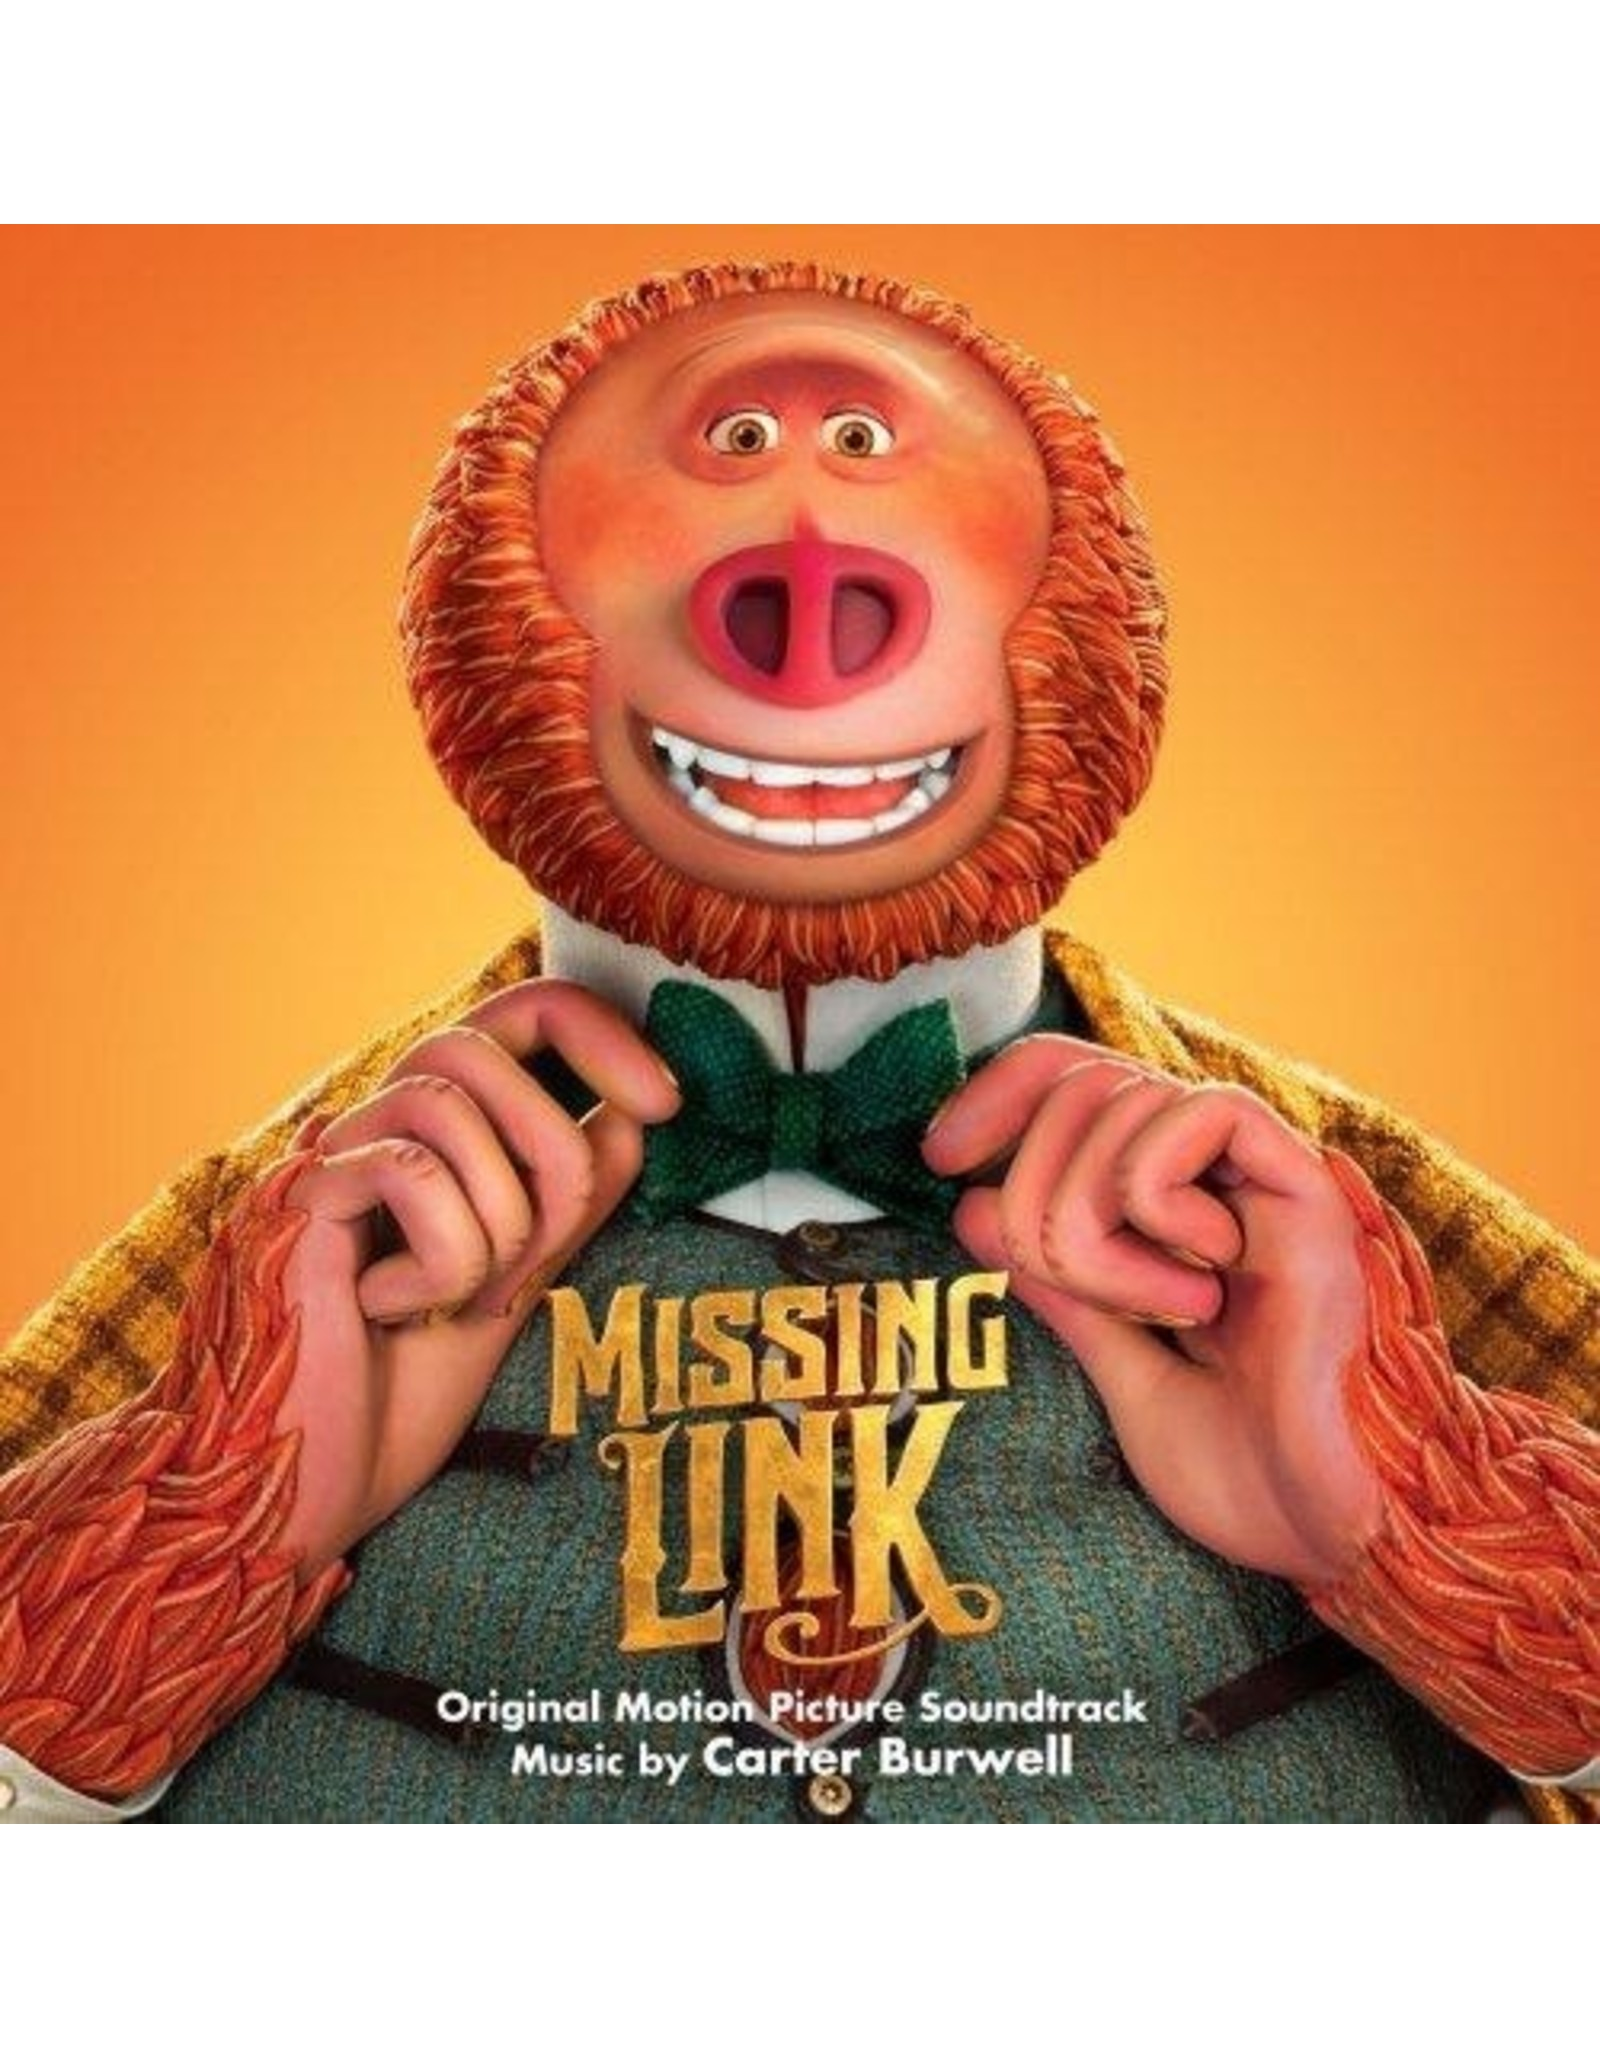 New Vinyl Carter Burwell - Missing Link OST 2LP